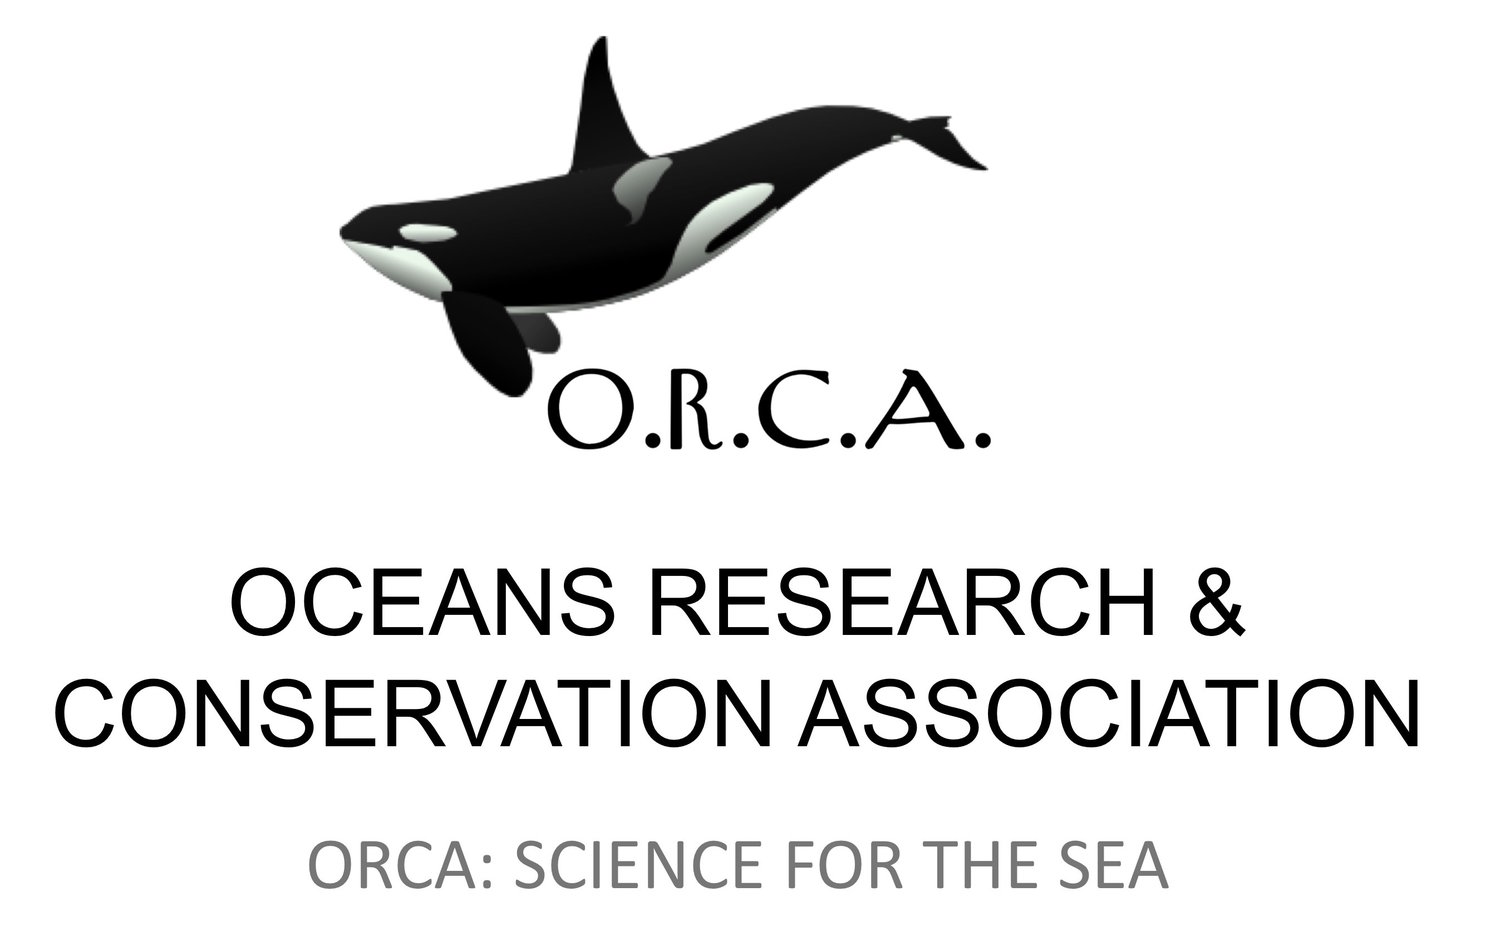 Oceans Research & Conservation Association